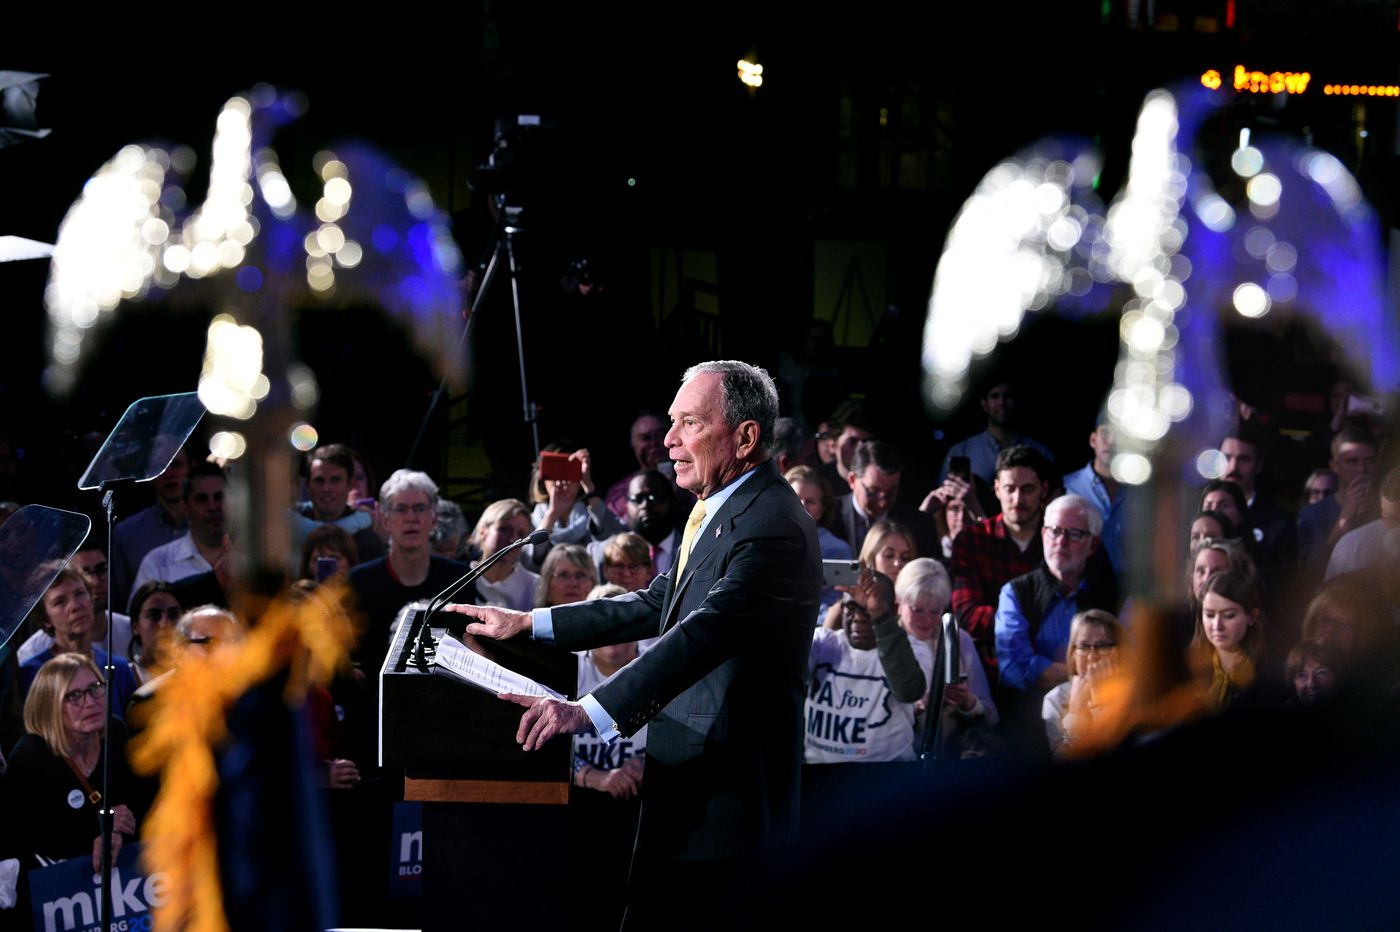 Mike Bloomberg is getting a serious look from suburban Democrats who just want to beat Trump